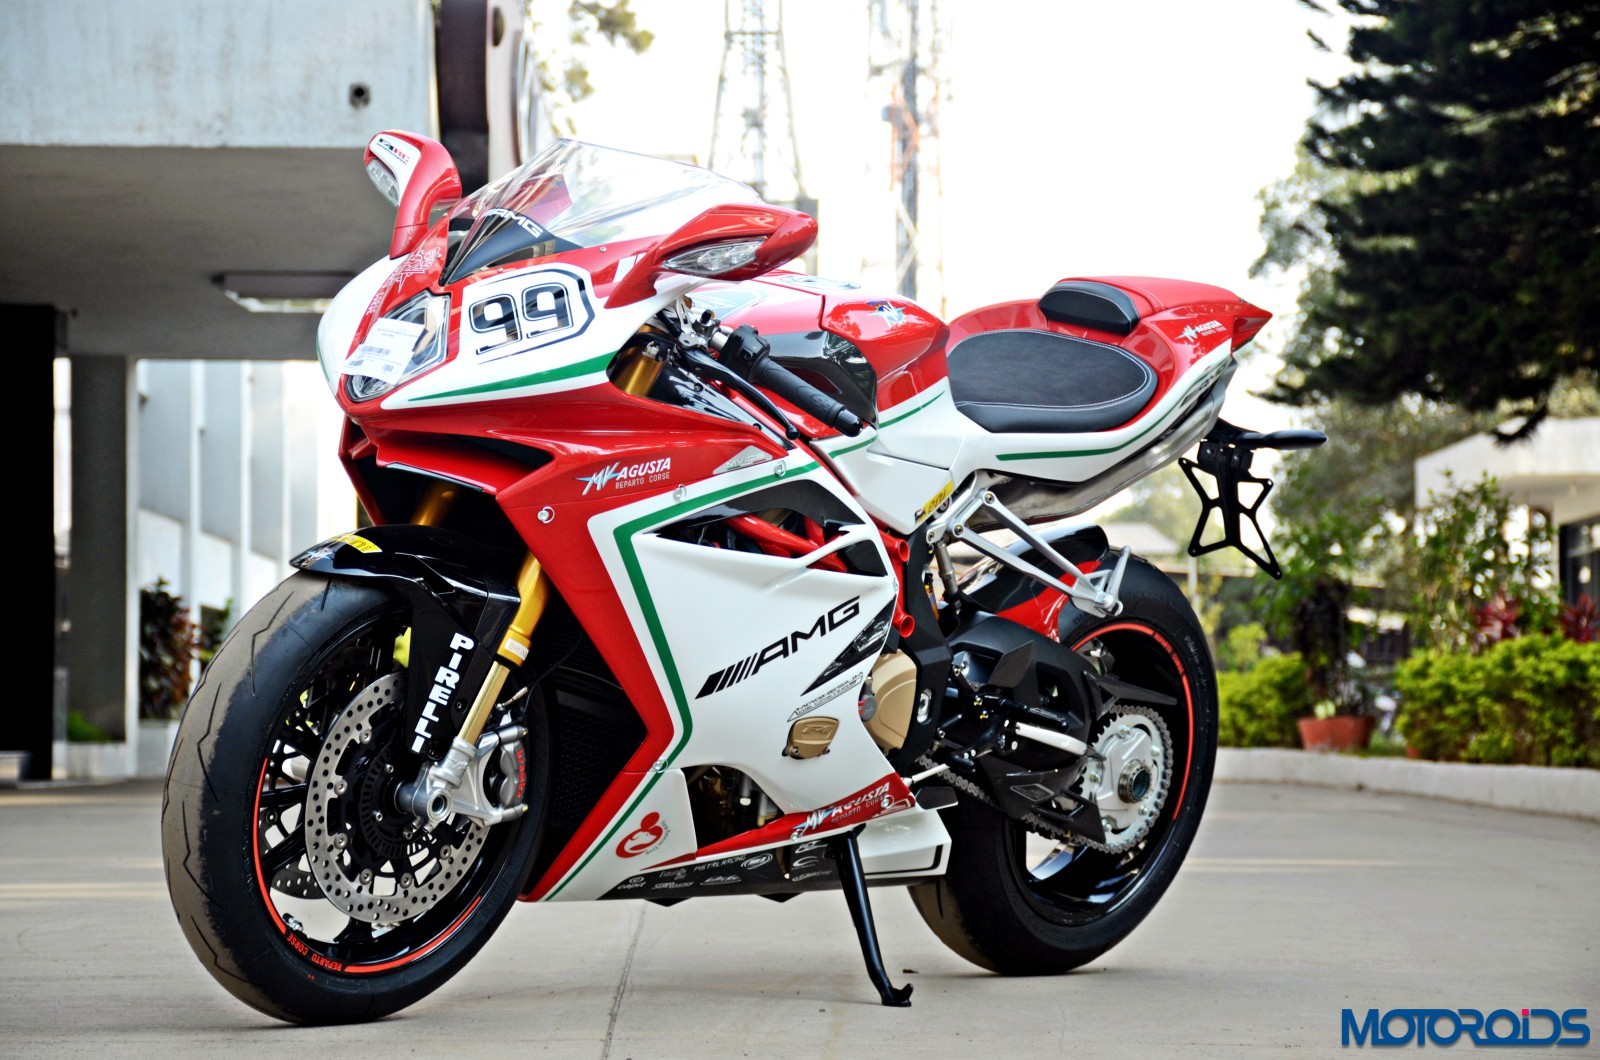 Image result for MV Agusta F4 RC motoroids